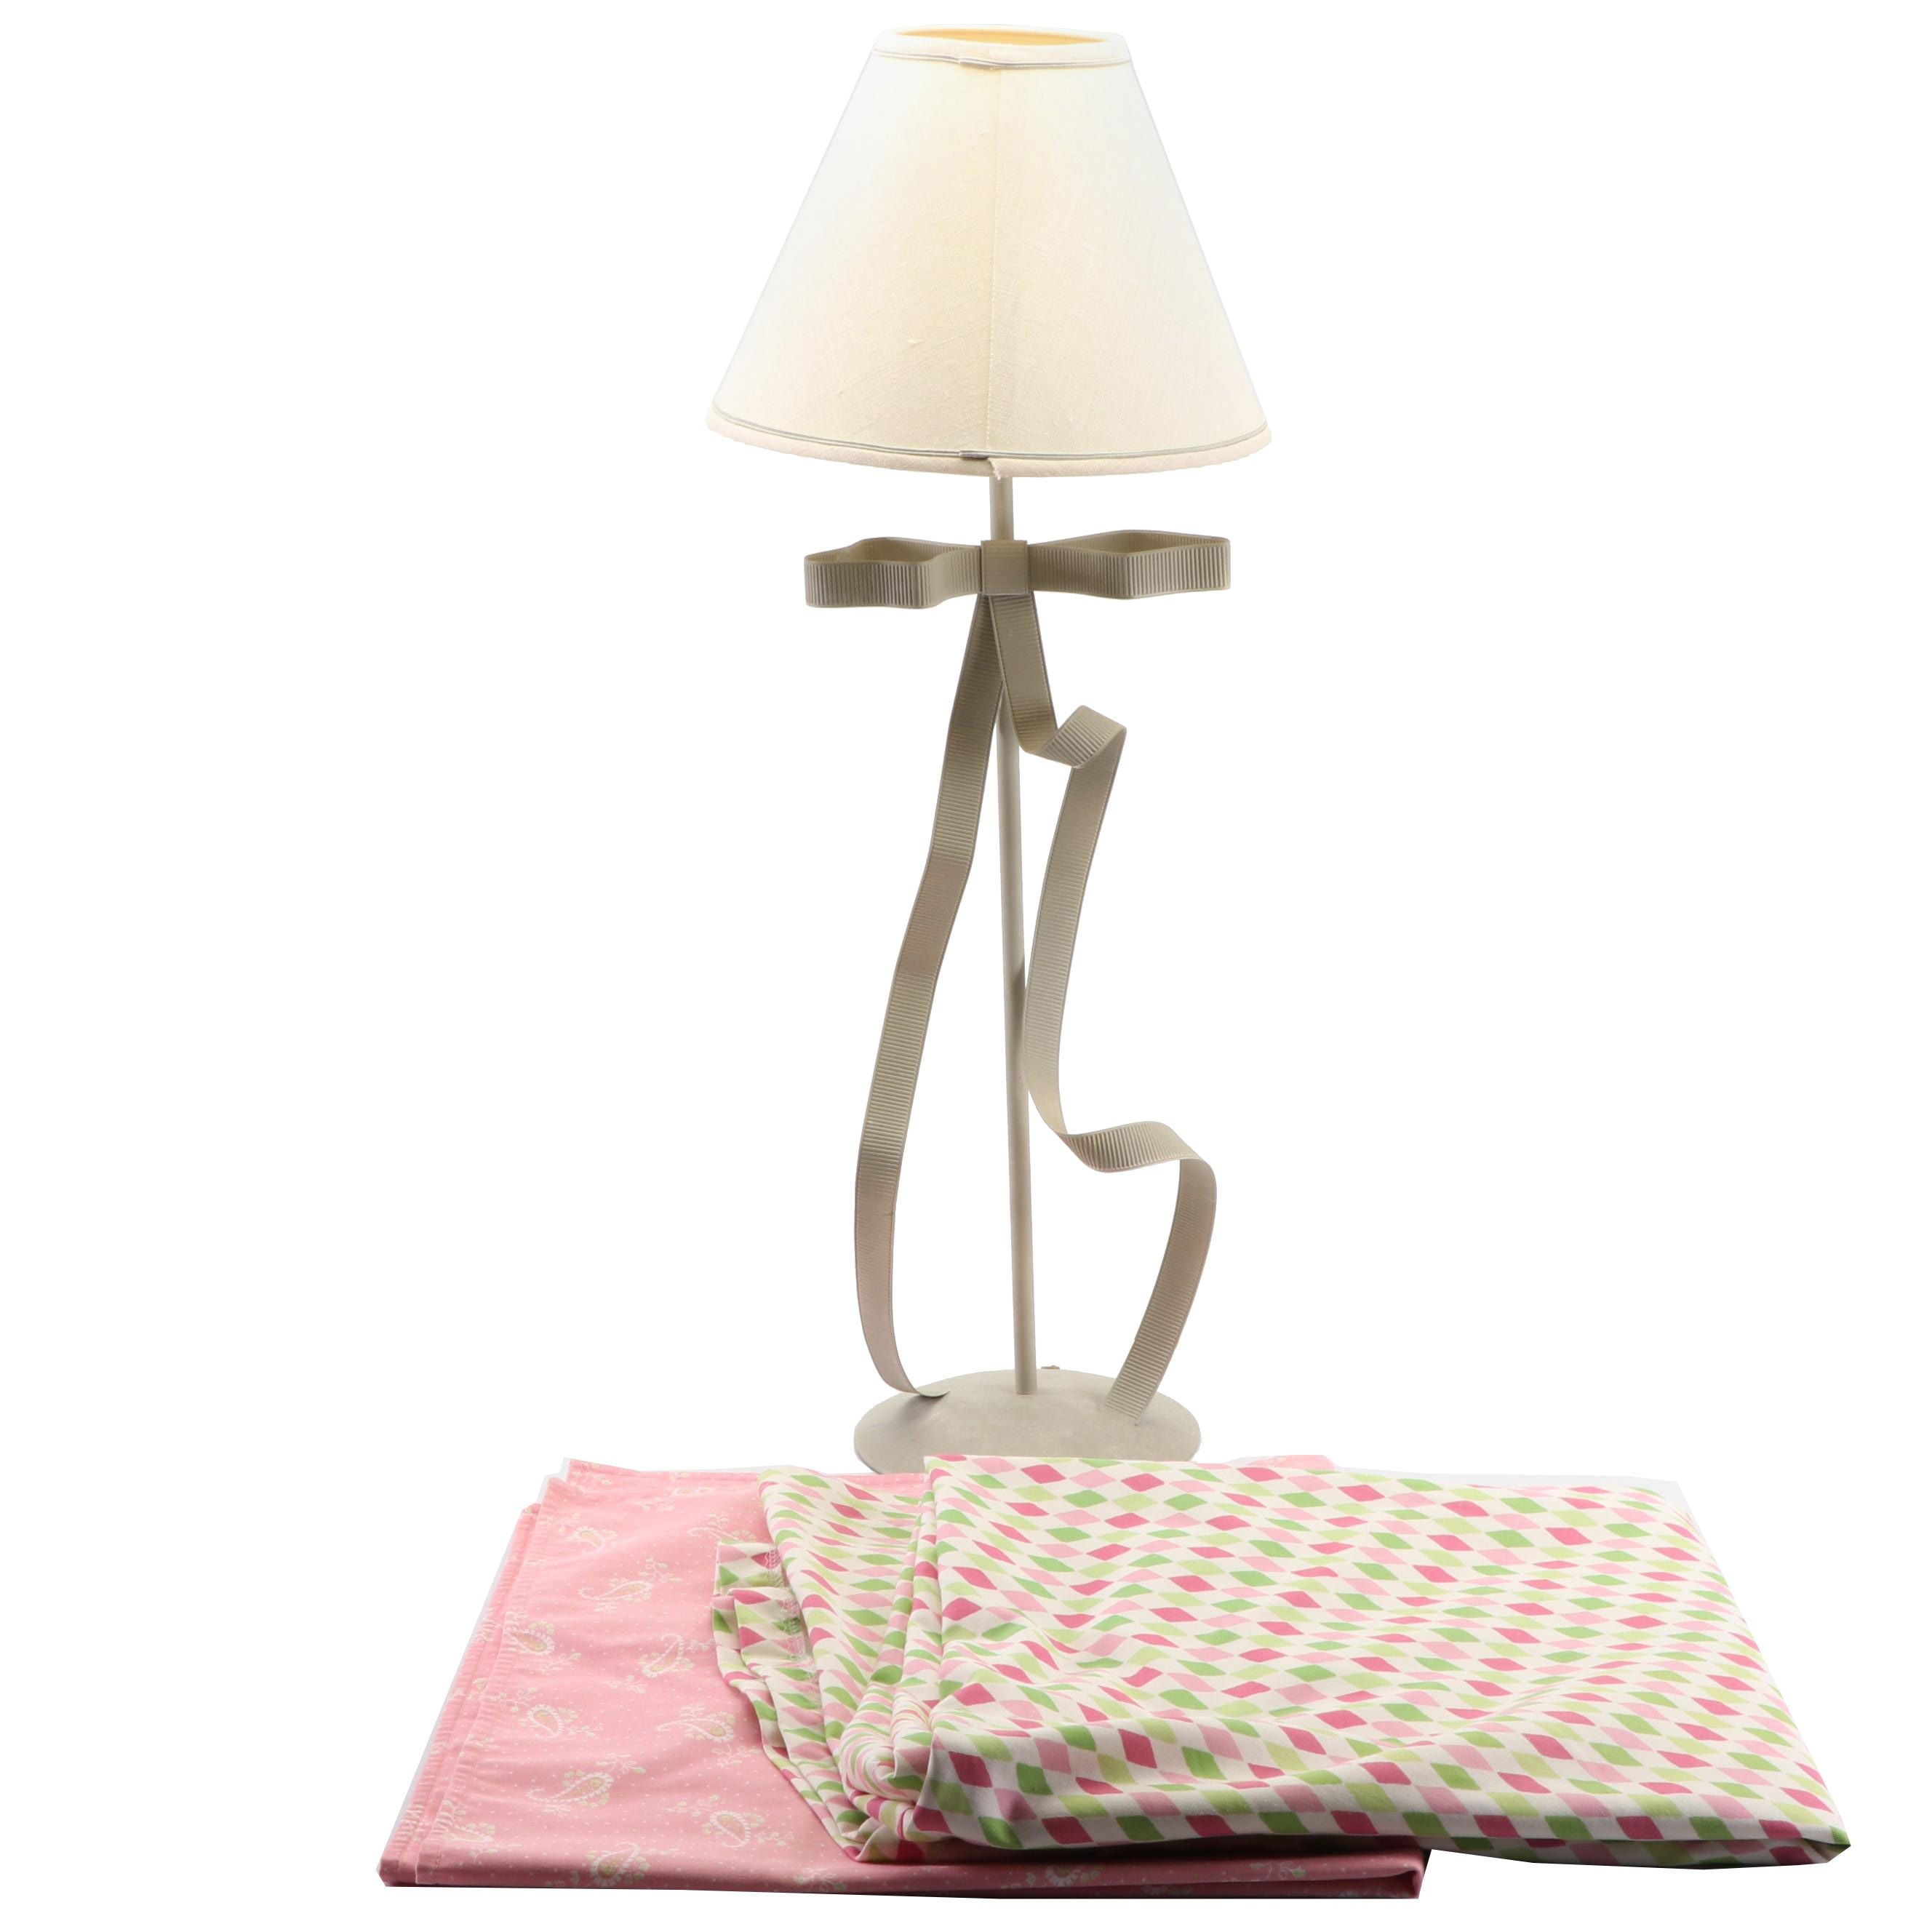 Guild Master Ribbon Table Lamp and Table Cloths